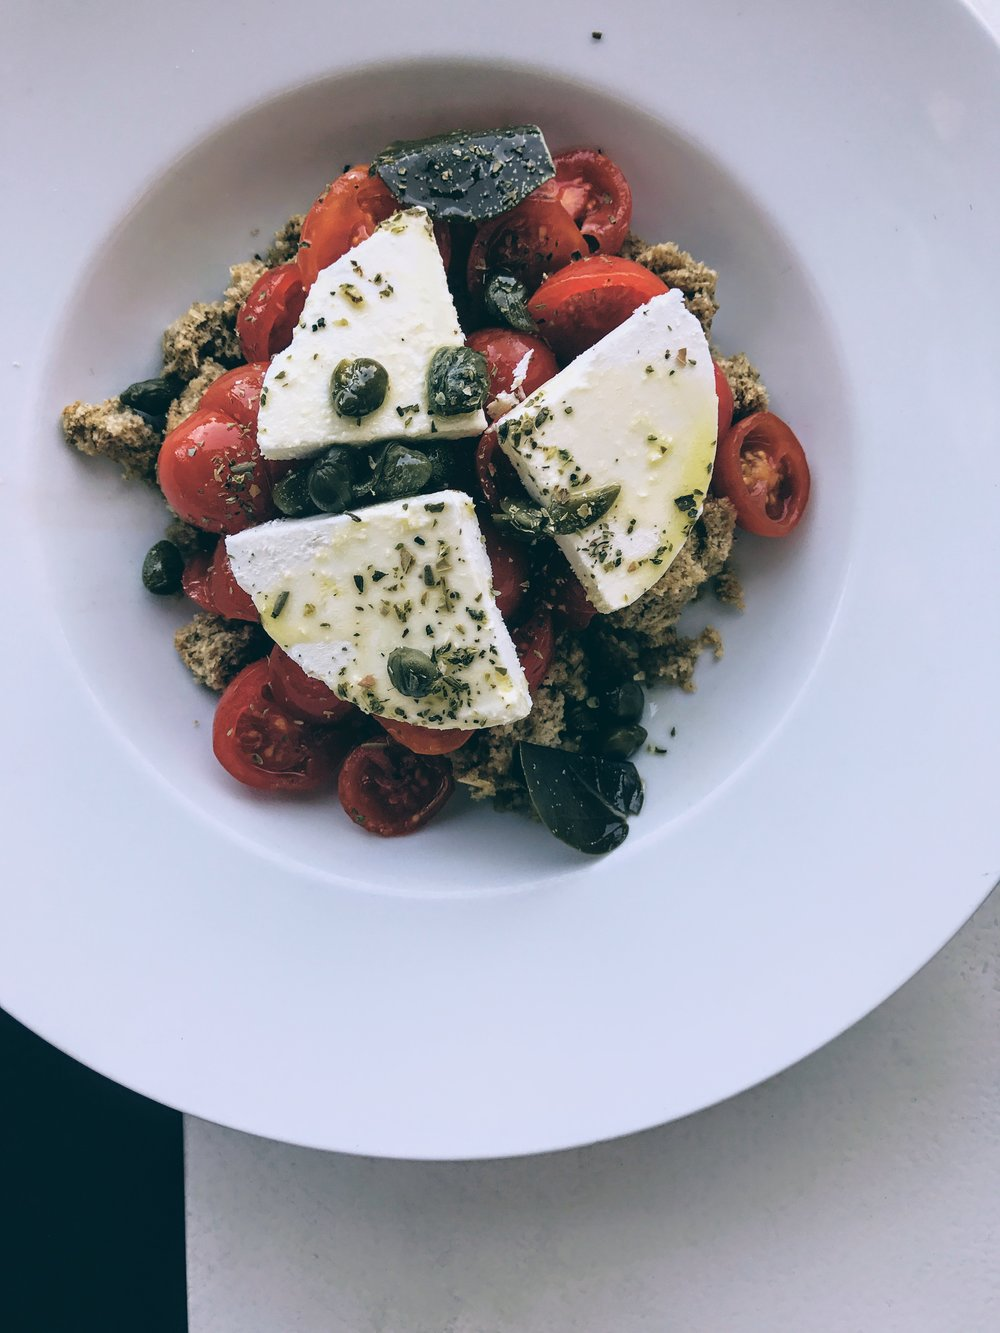 Pomodorini tomato salad with Cretan rusk, caper leaves and Mykonos xinomizithra cheese